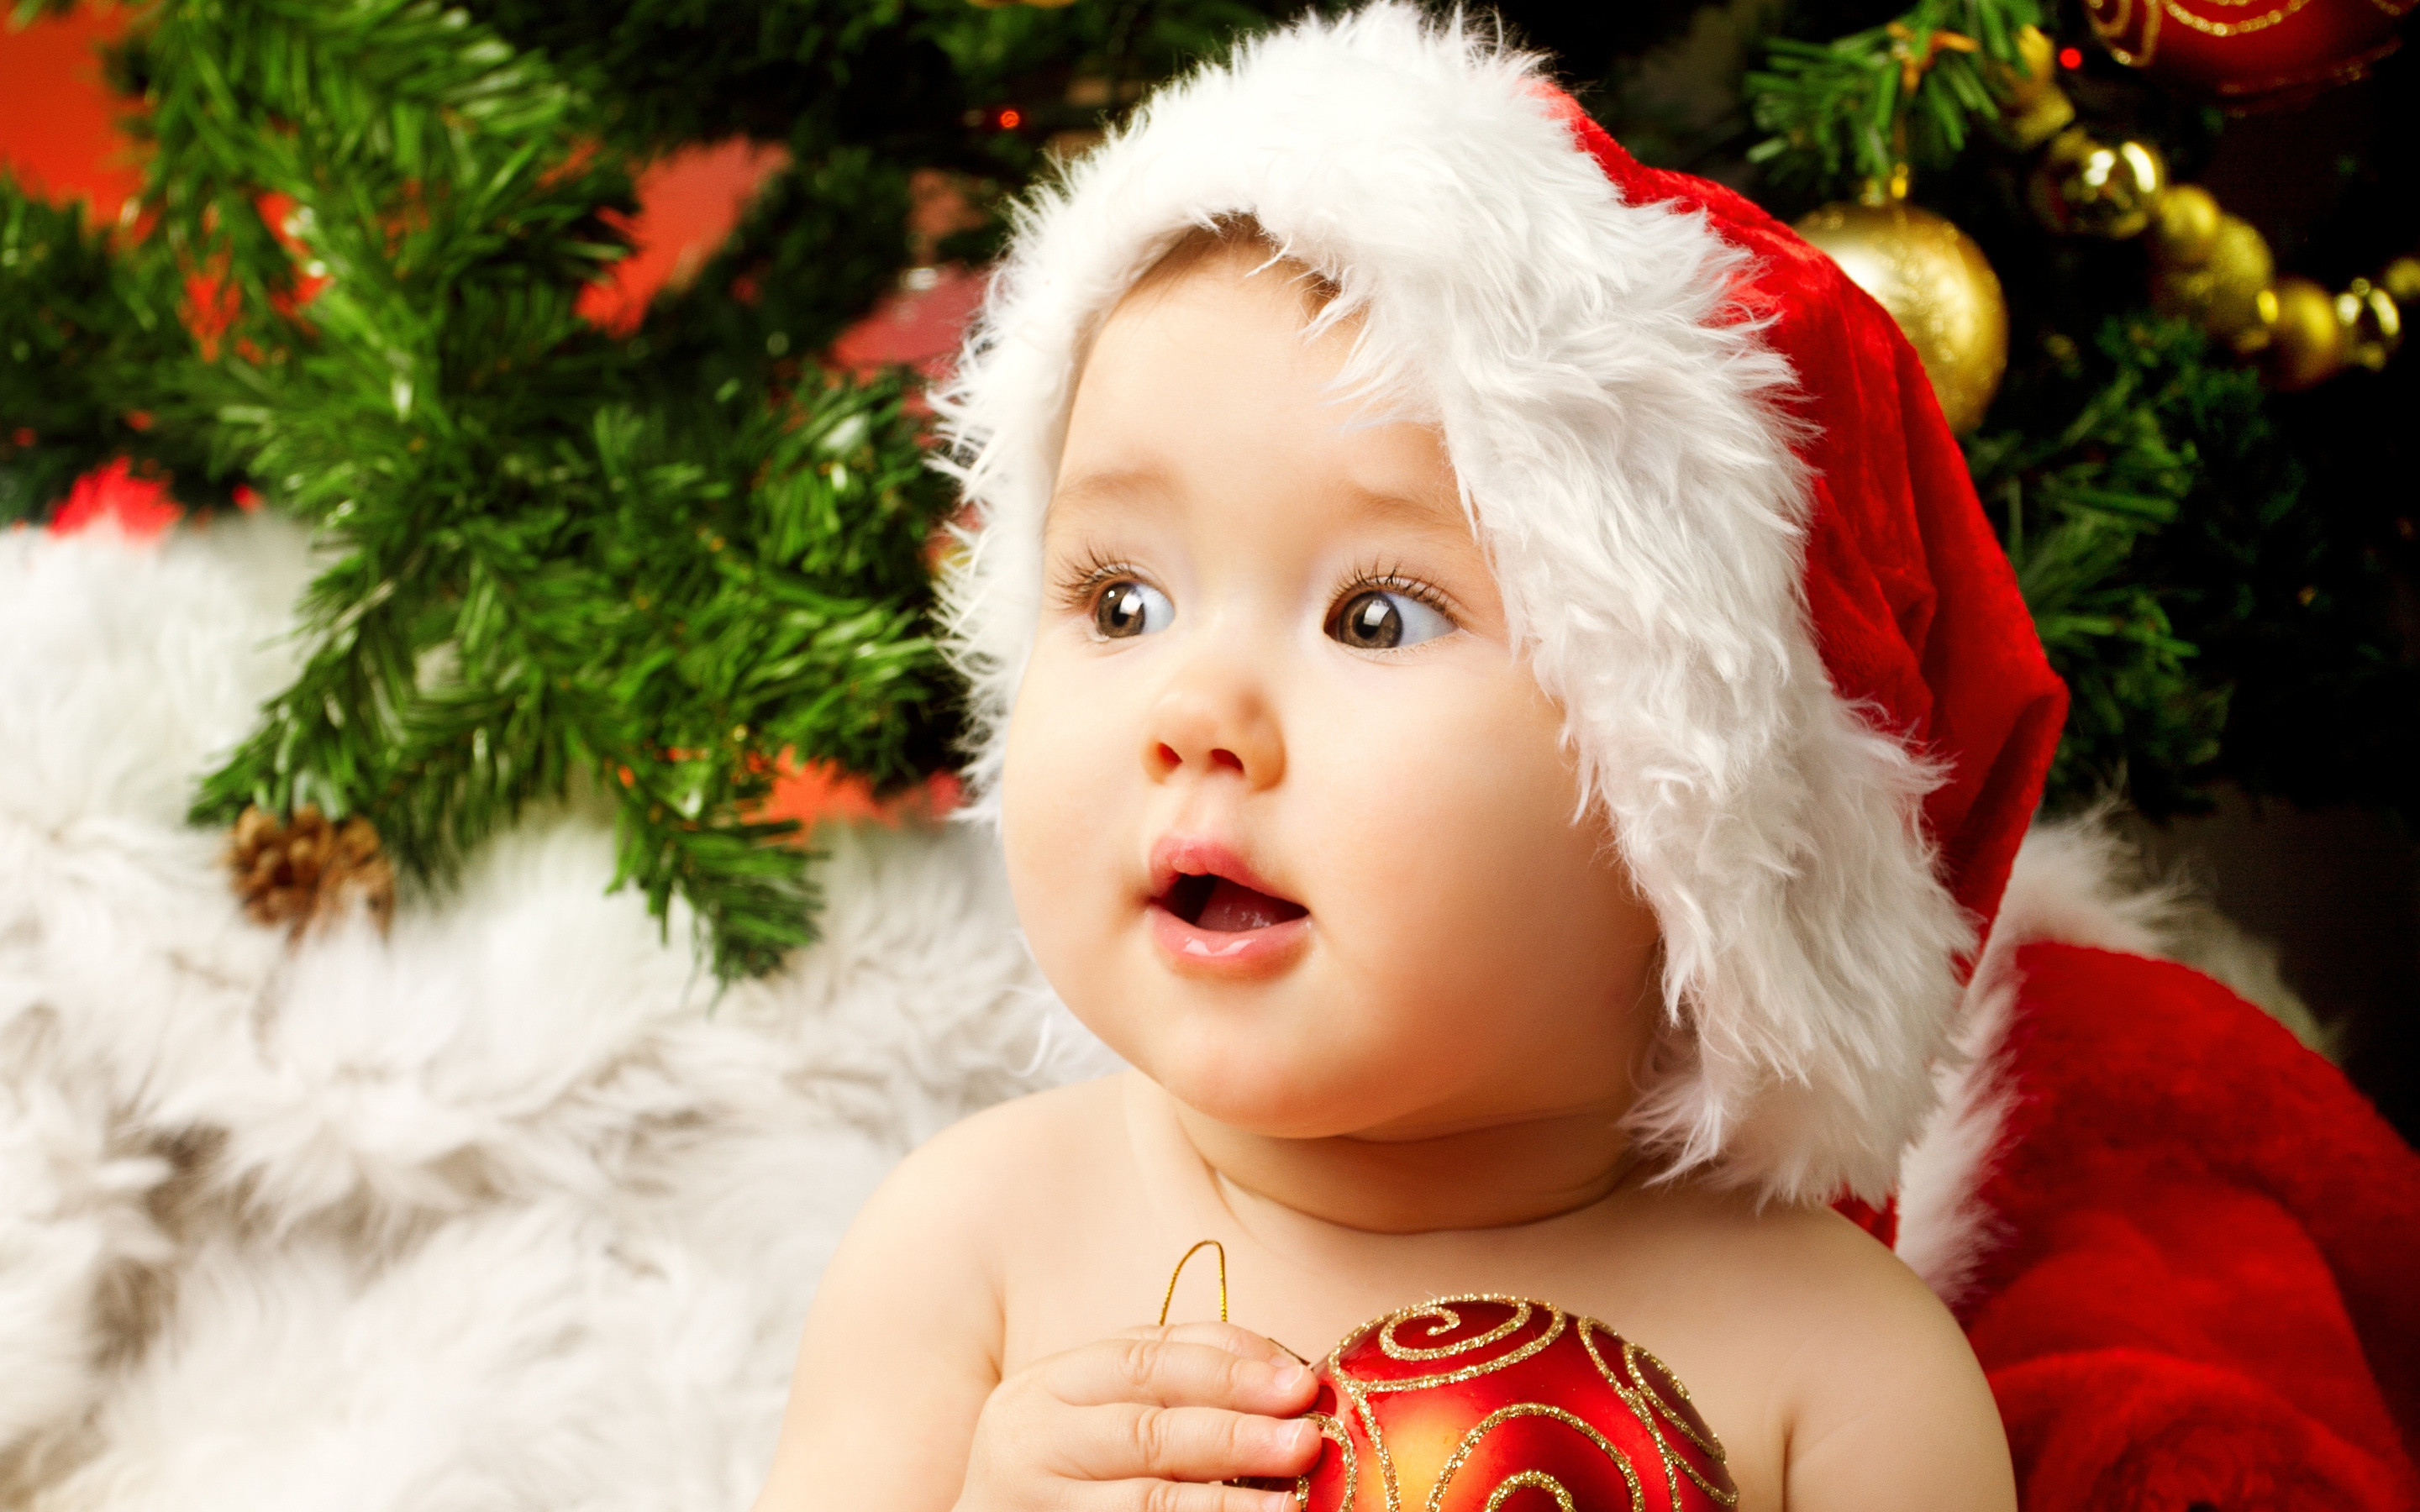 Cute baby pics wallpapers 64 images 2880x1800 cute five princesses cute baby wallpapers pinterest baby wallpaper voltagebd Gallery